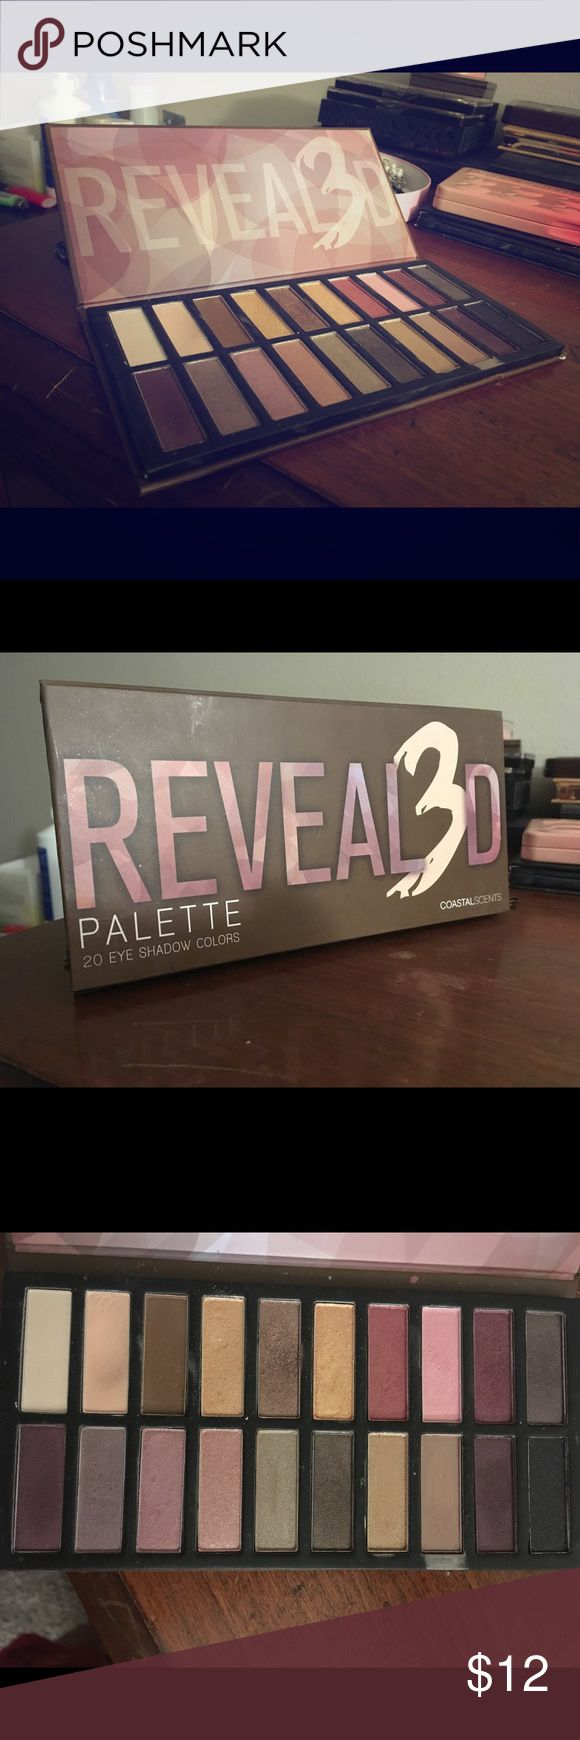 Reveal3D Eyeshadow Palette Used only a handful of times. Good, kind of more neutral colored palette with some fun colors in there. Coastal Scents Makeup Eyeshadow